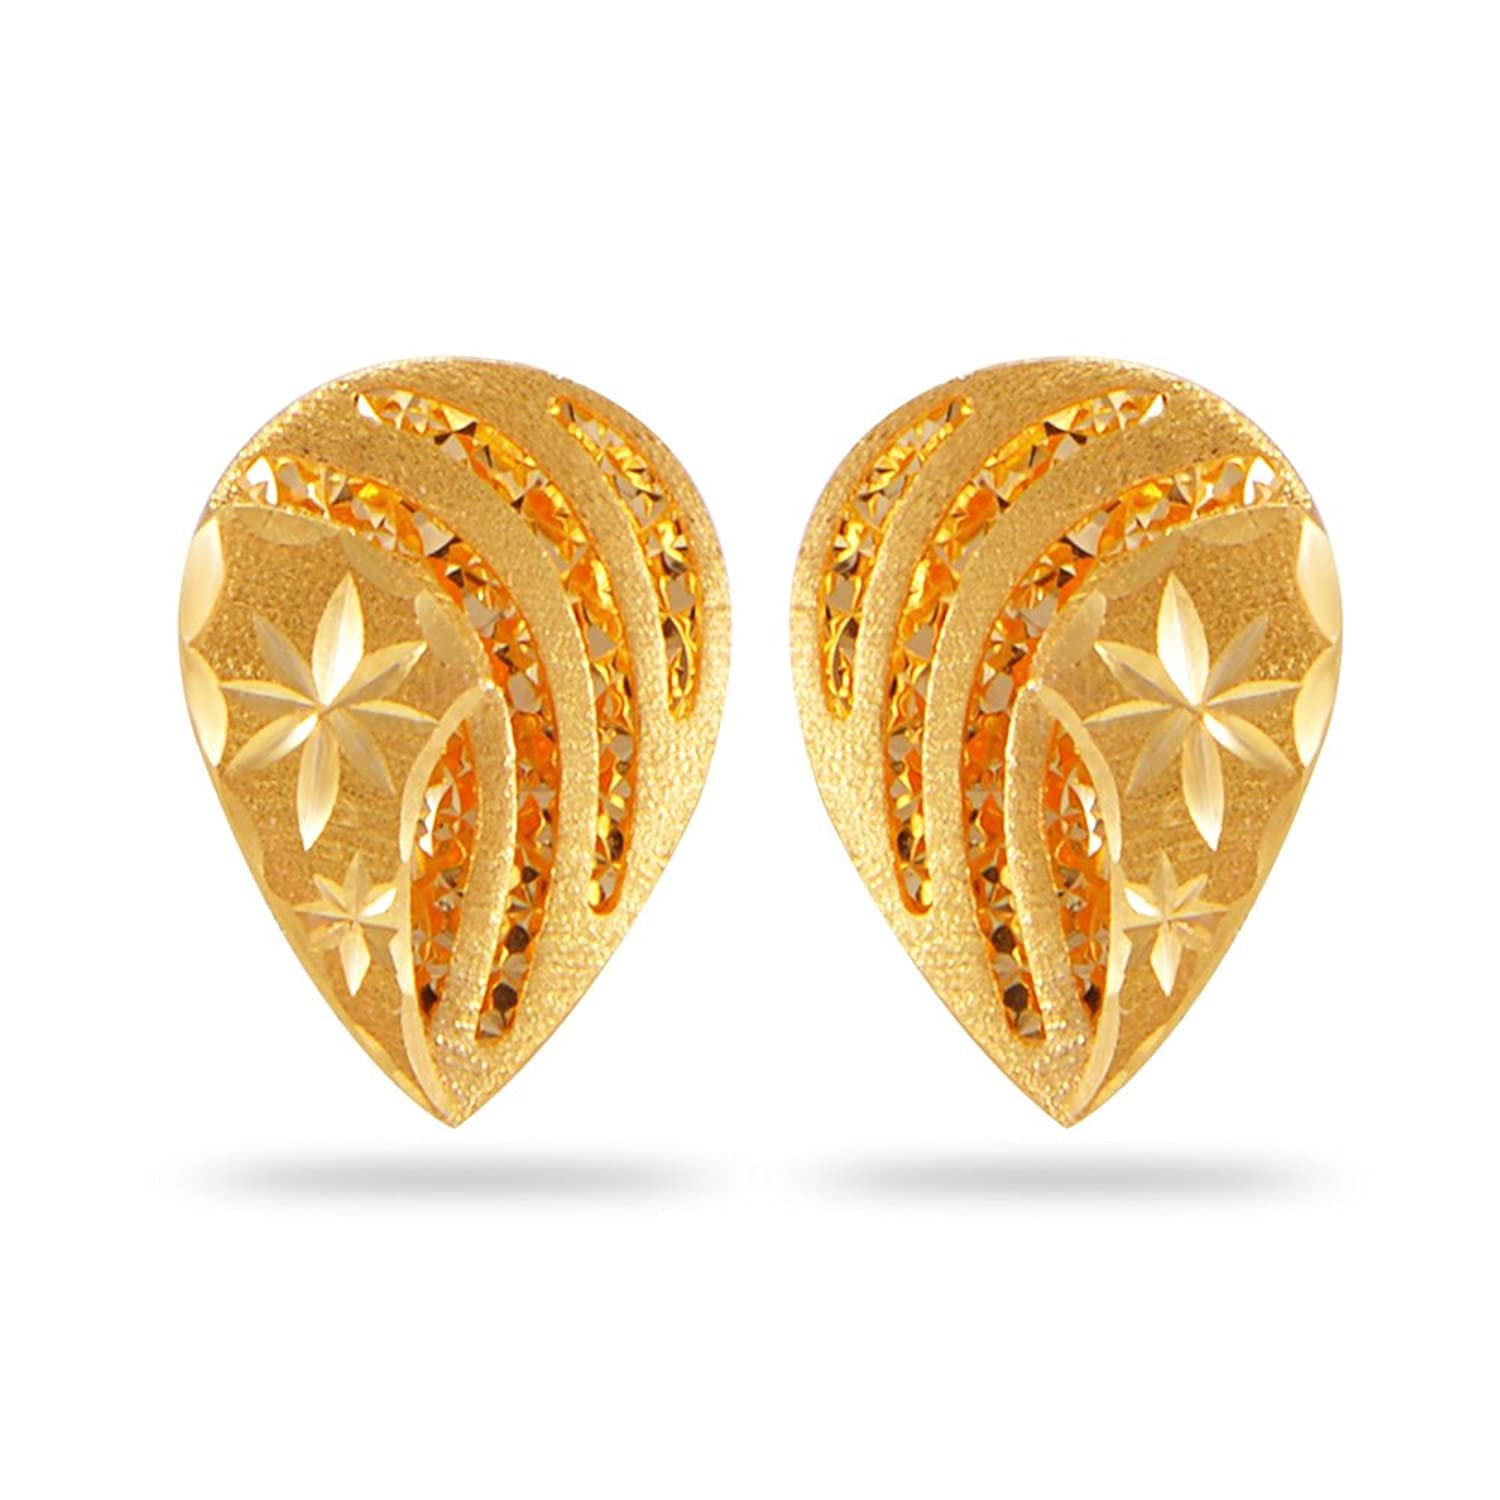 yellow dp earrings joyalukkas zenina prices store online stud real low gold at buy jewellery collection india in amazon